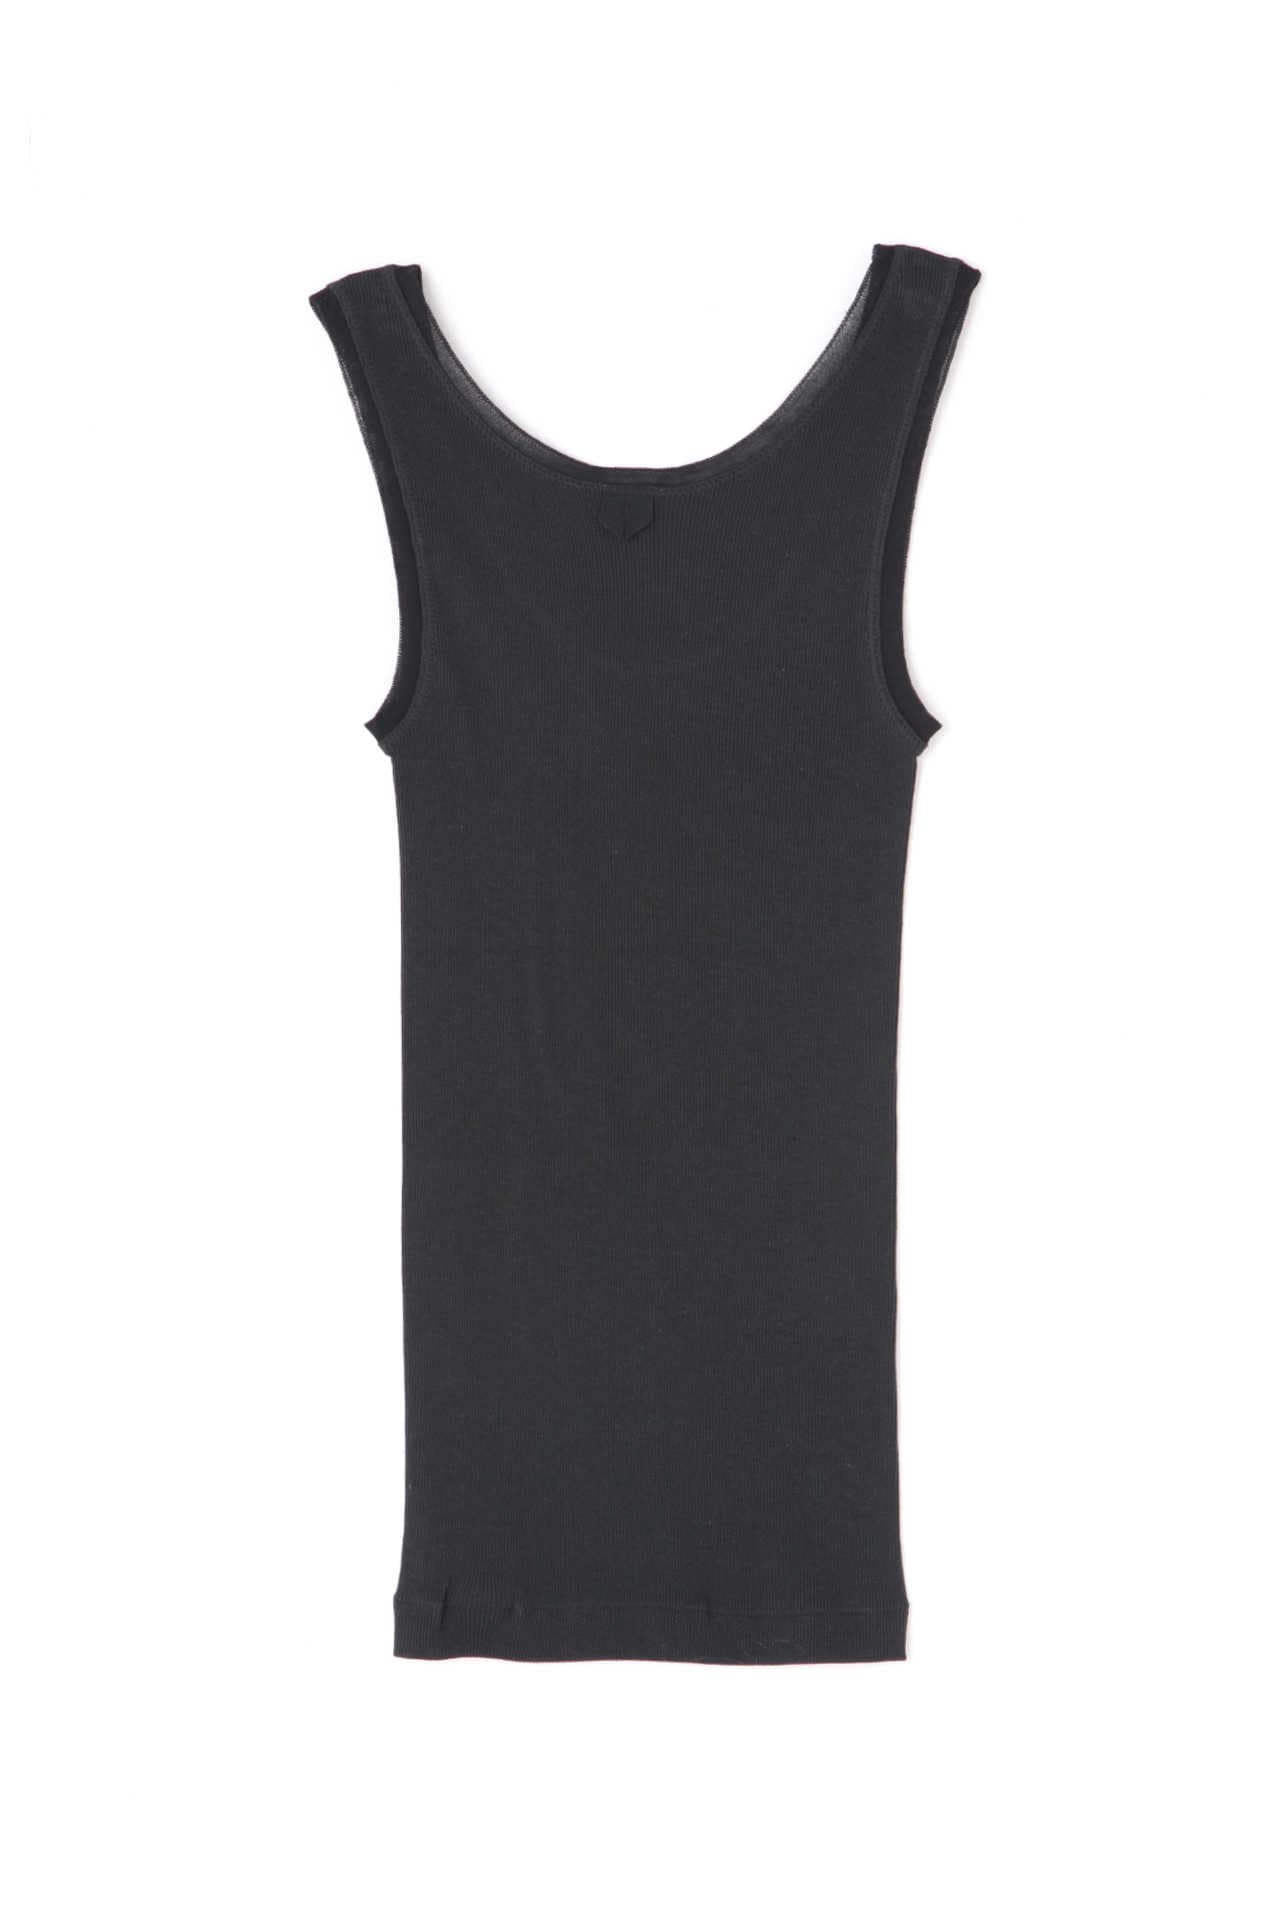 SUPIMA COTTON RIB TANK11